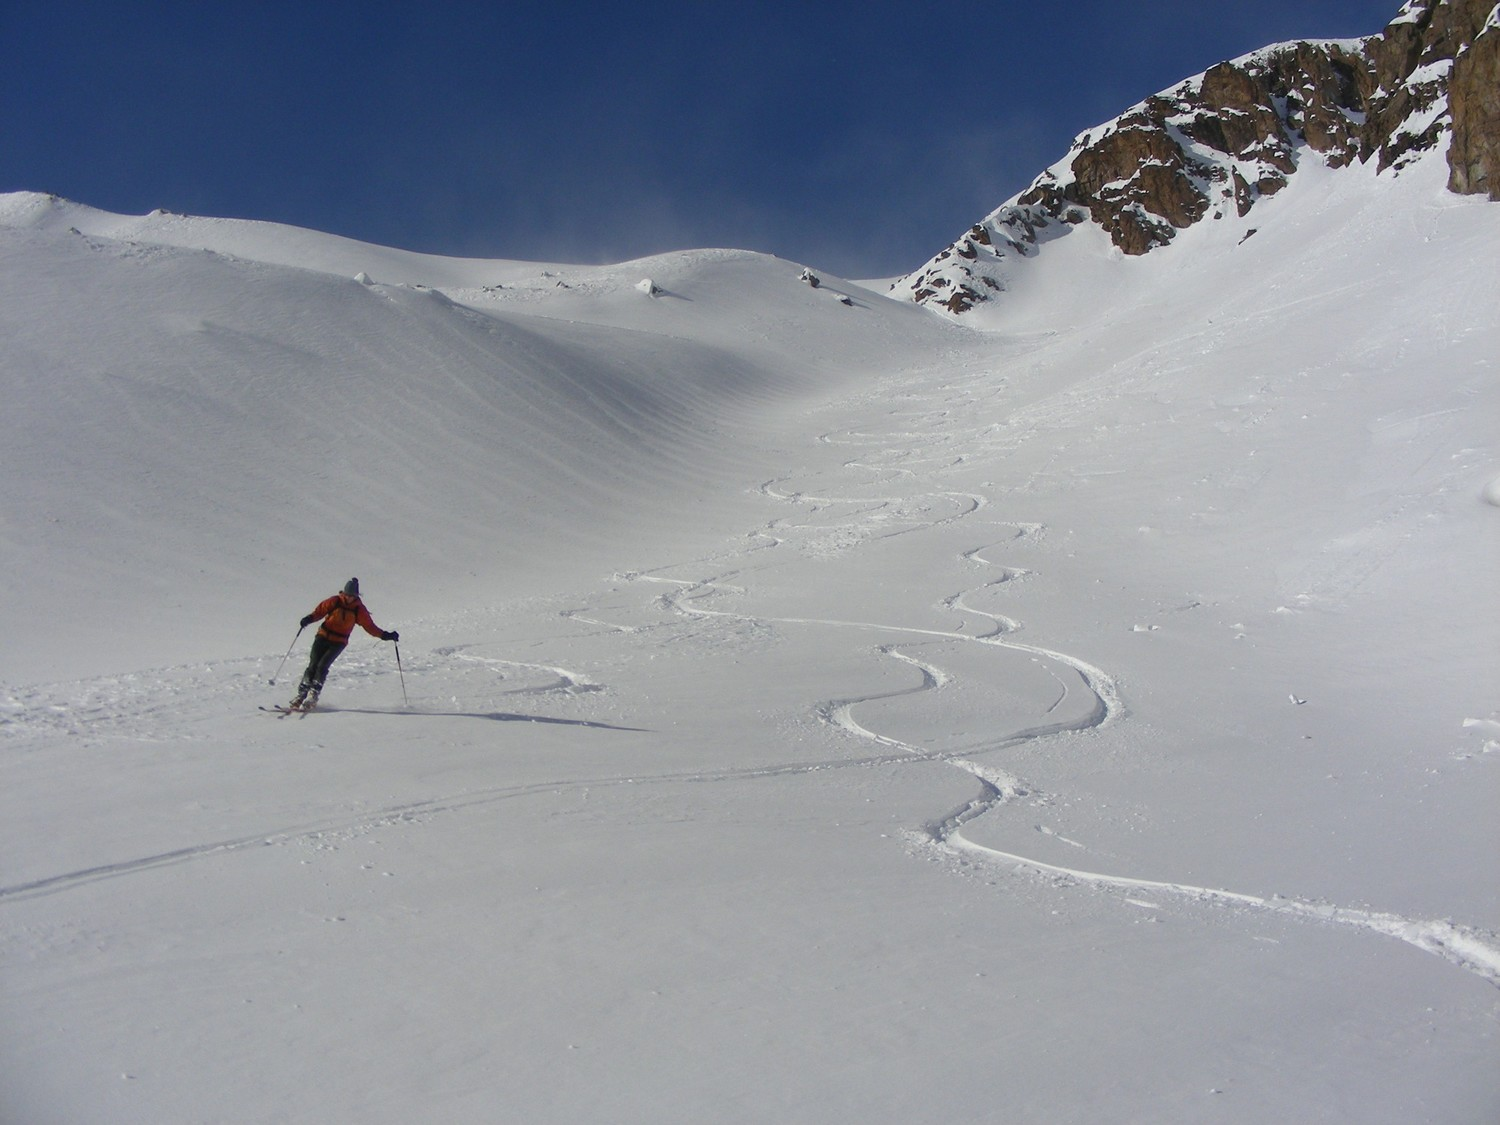 Good skiing in the gully that goes around the moraine